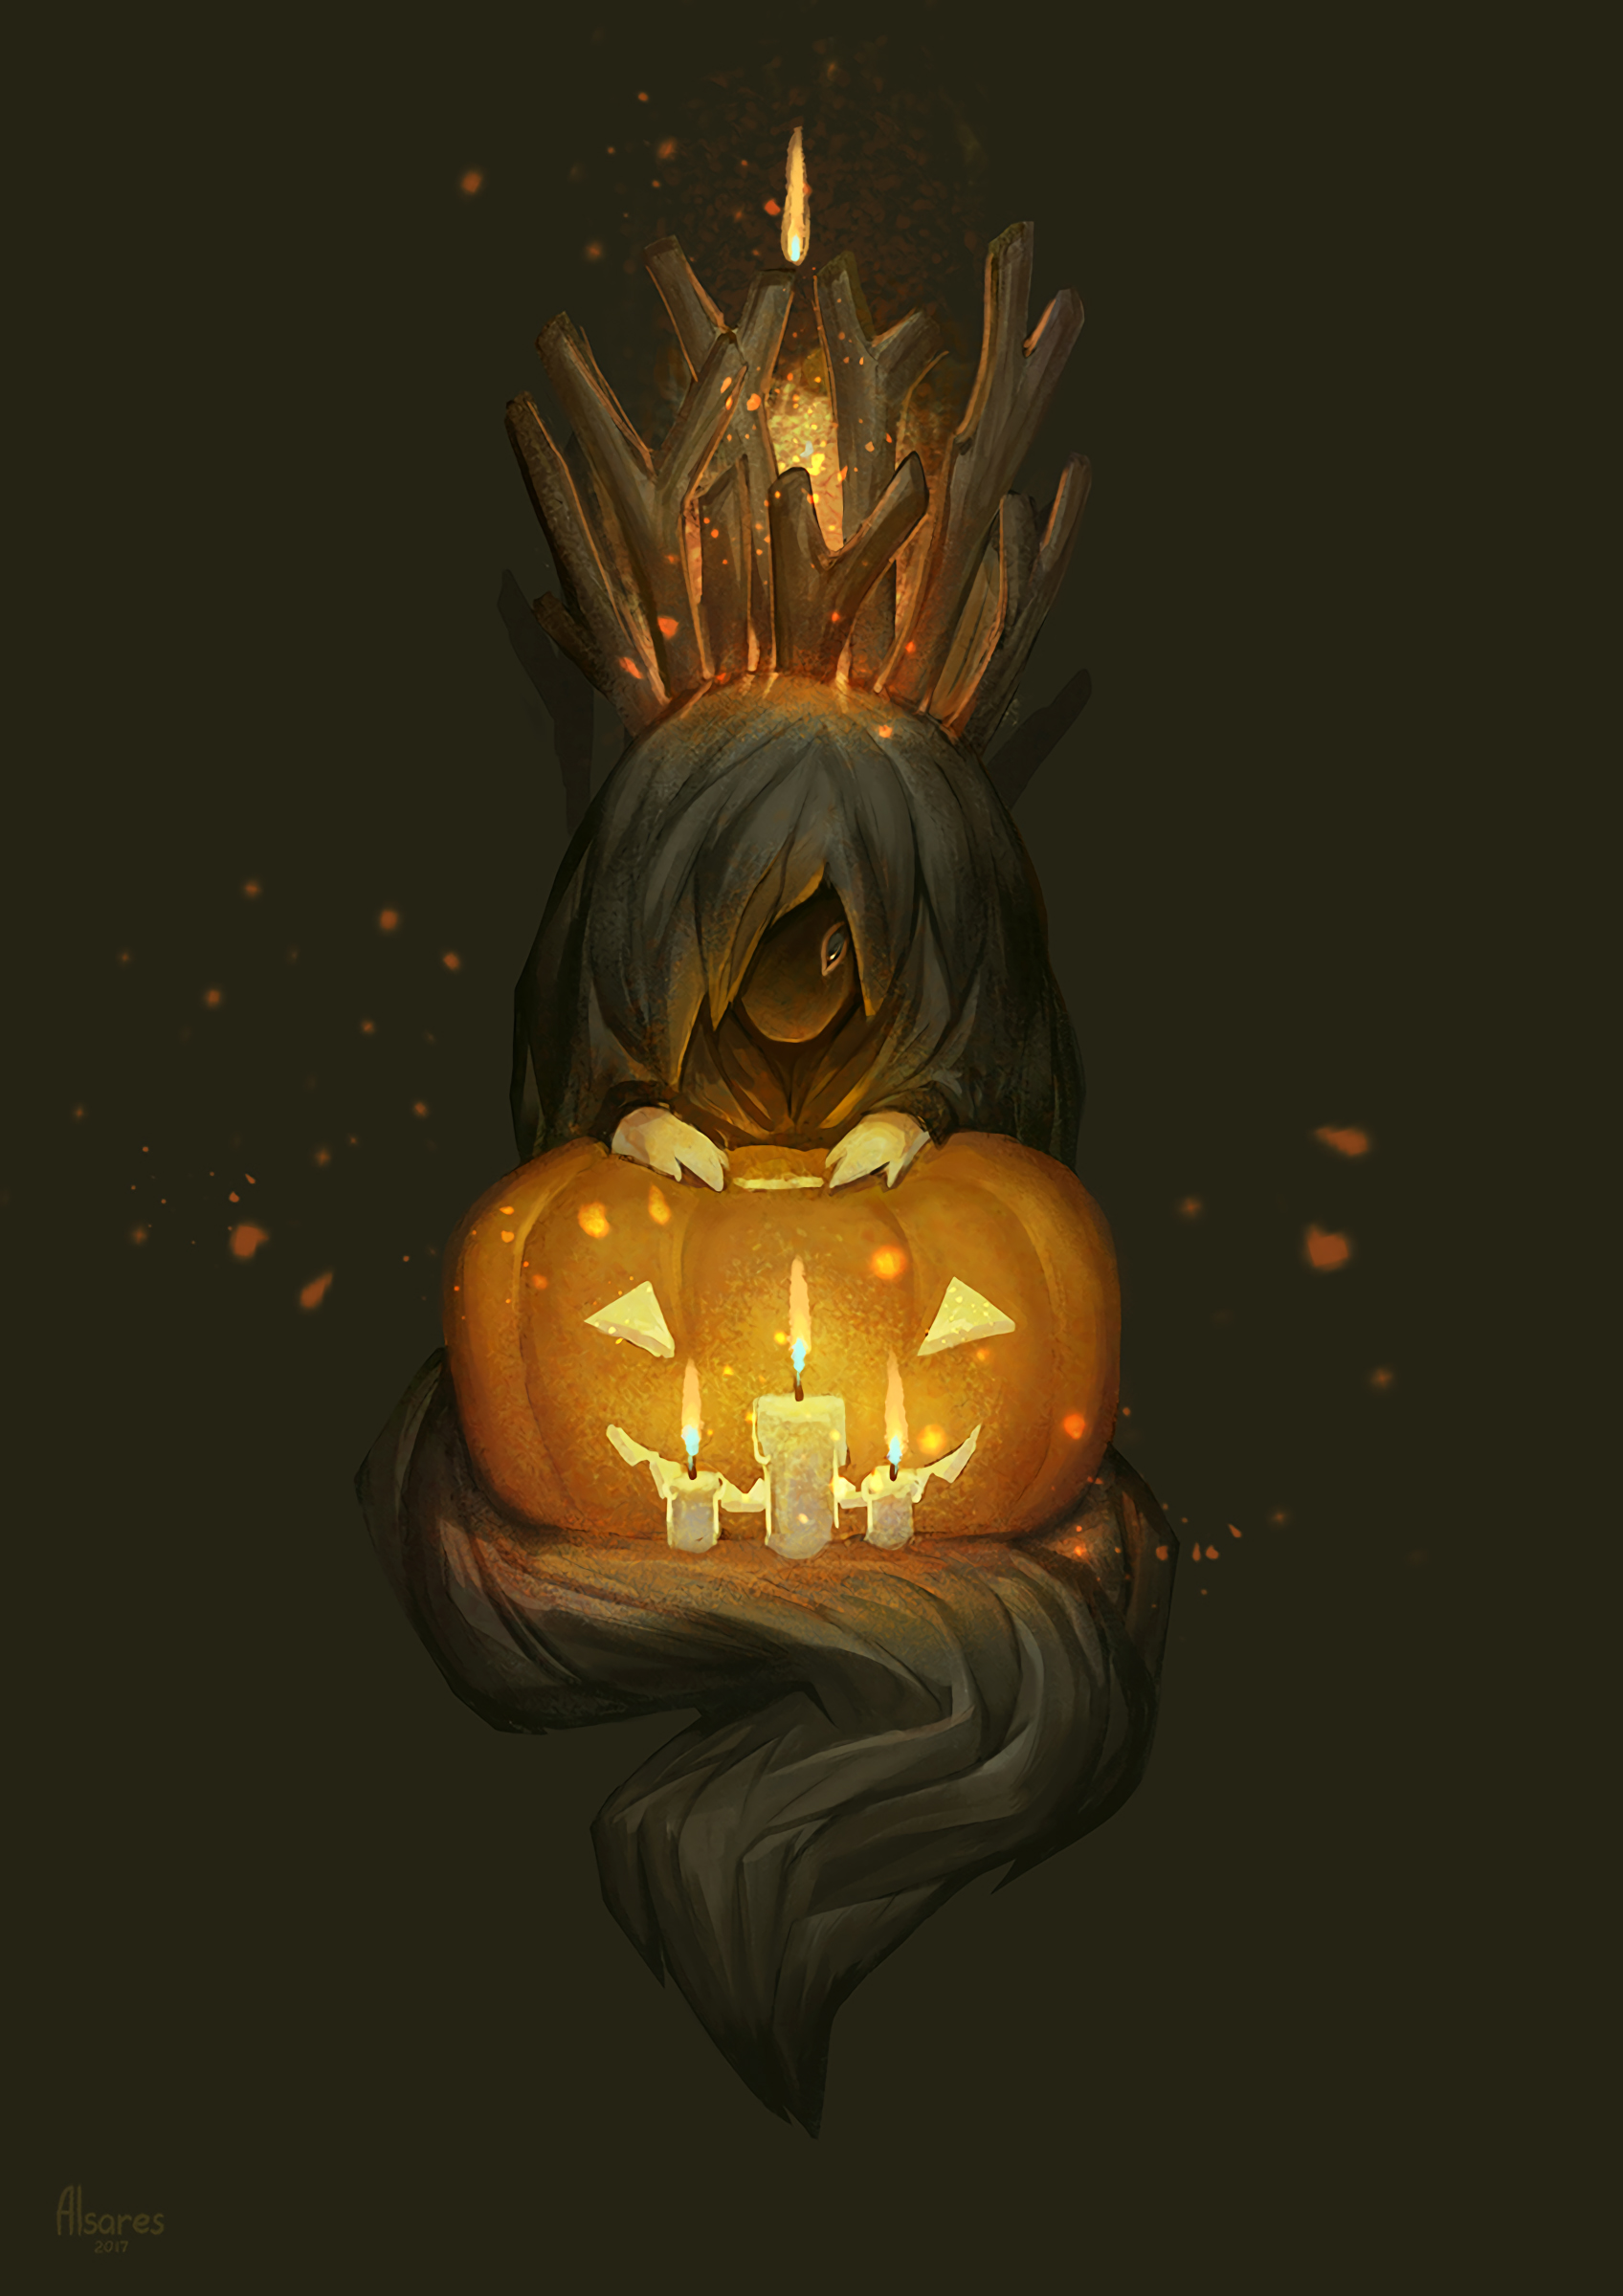 118772 Screensavers and Wallpapers Pumpkin for phone. Download Art, Candles, Pumpkin, Monster pictures for free